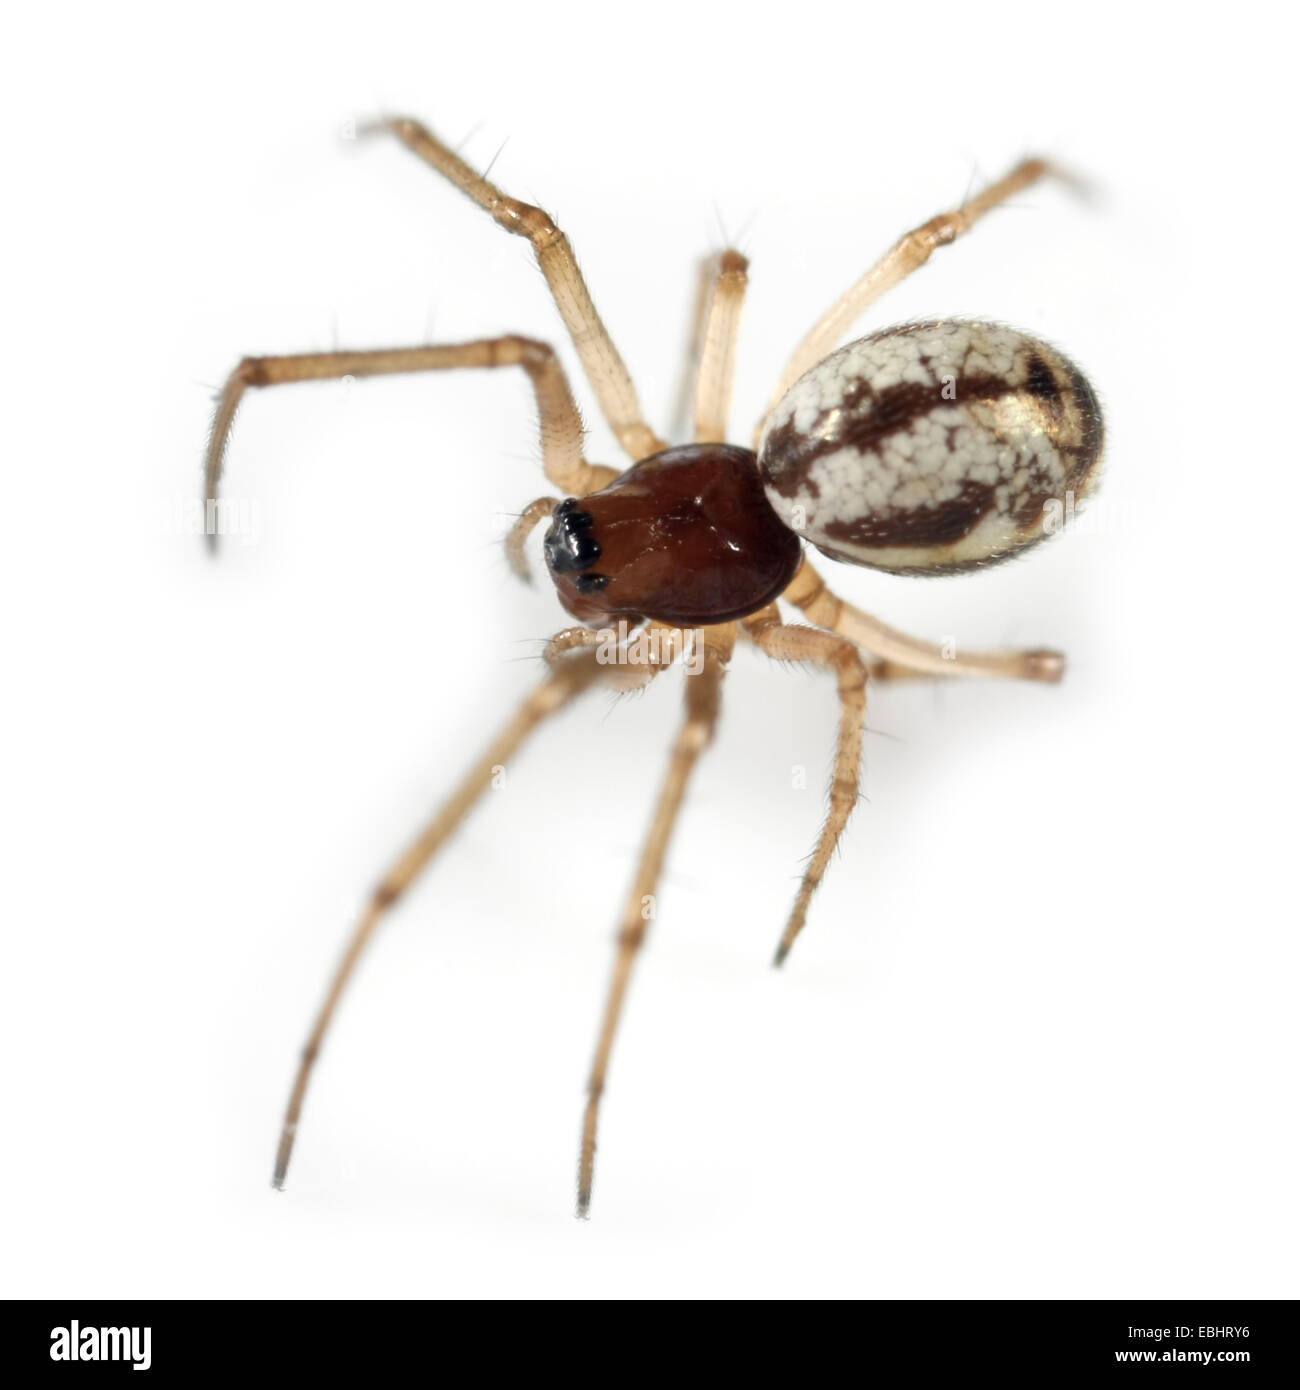 A female Small Hanky-Weaver (Microlinyphia pusilla) spider on a white background, part of the family Linyphiidae - Stock Image